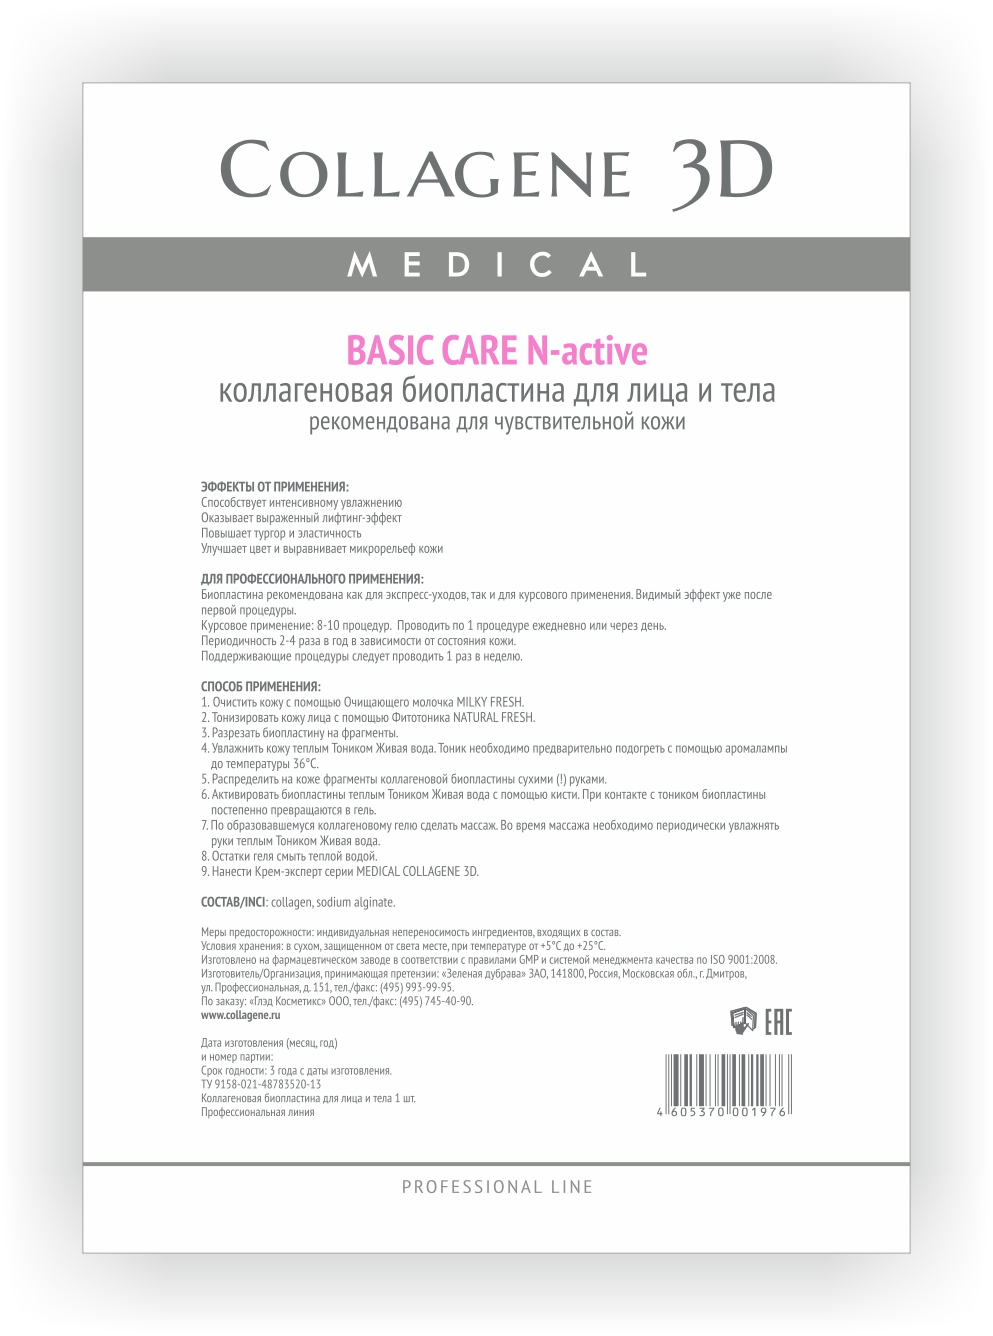 "MEDICAL COLLAGENE 3D Биопластины коллагеновые чистый коллаген для лица и тела ""Basic Care"" А4"